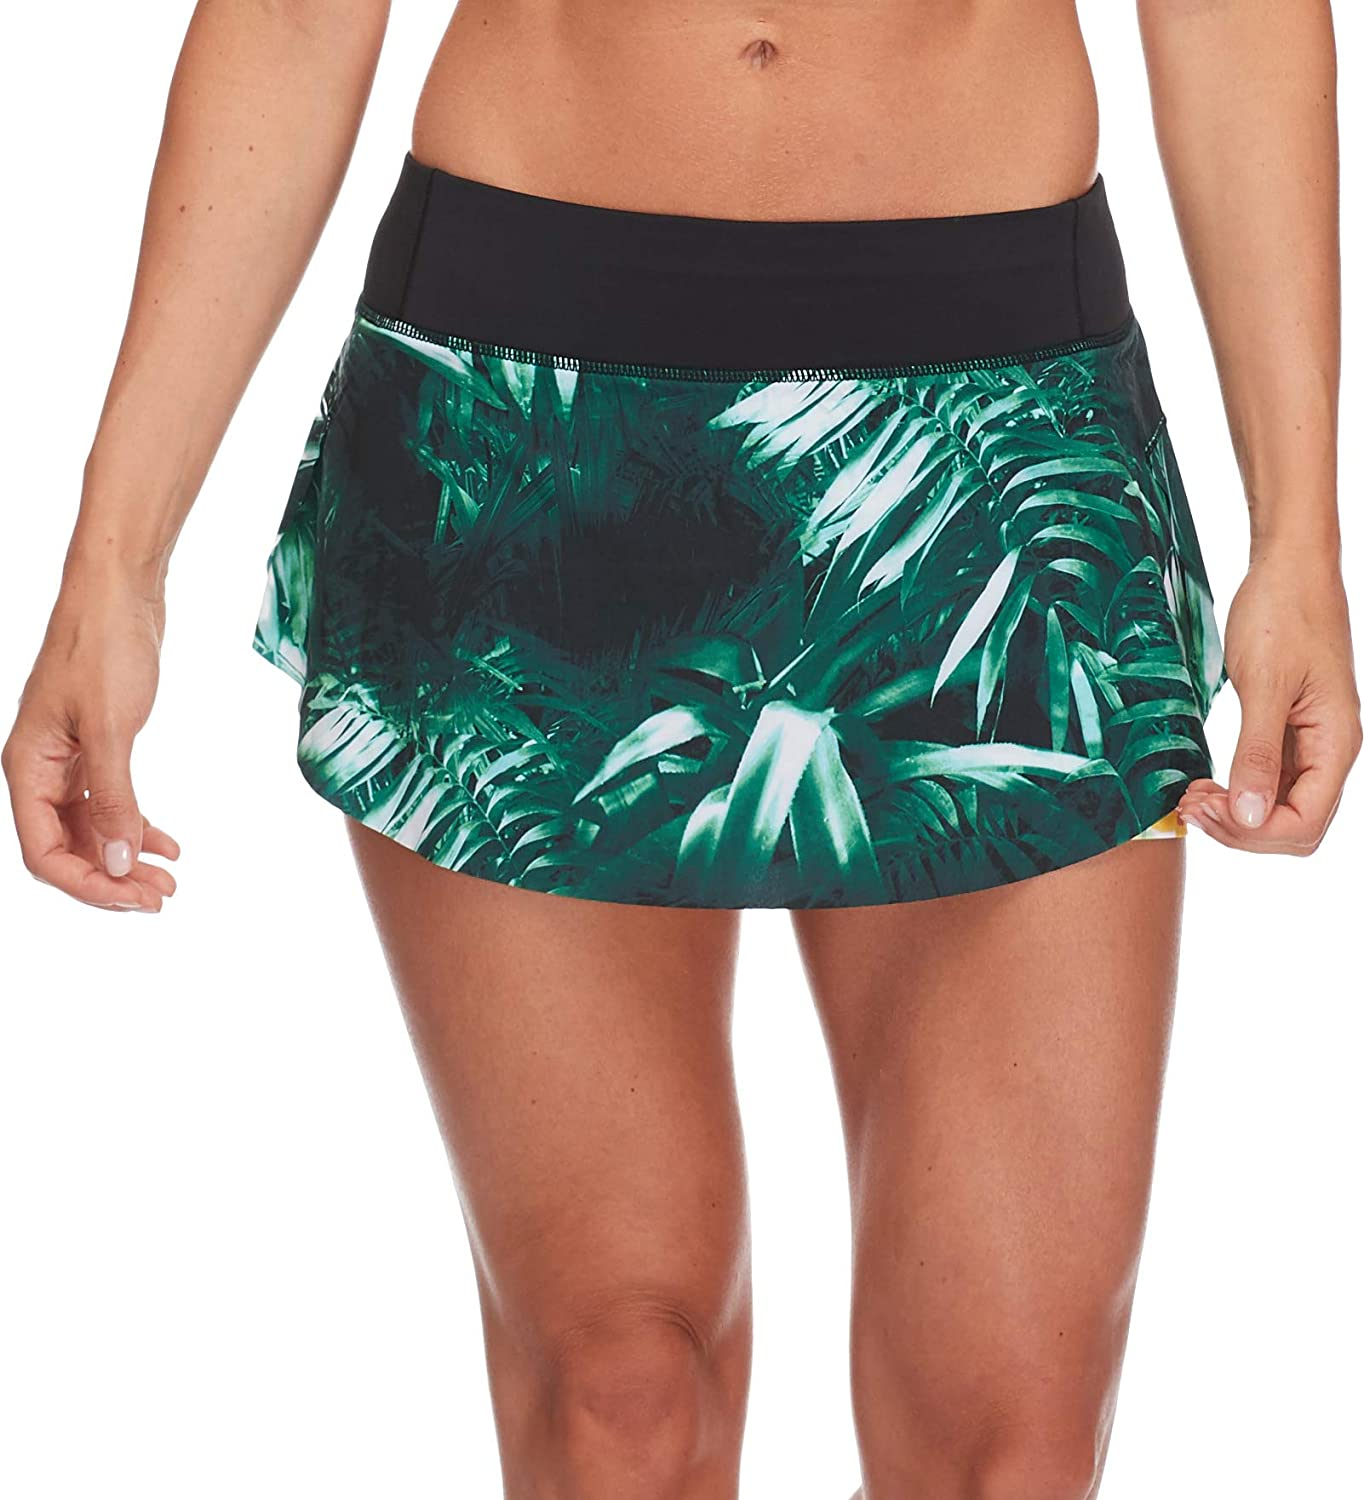 Body Glove Womens Ceres Loose Fit Activewear Skirt with Undershort